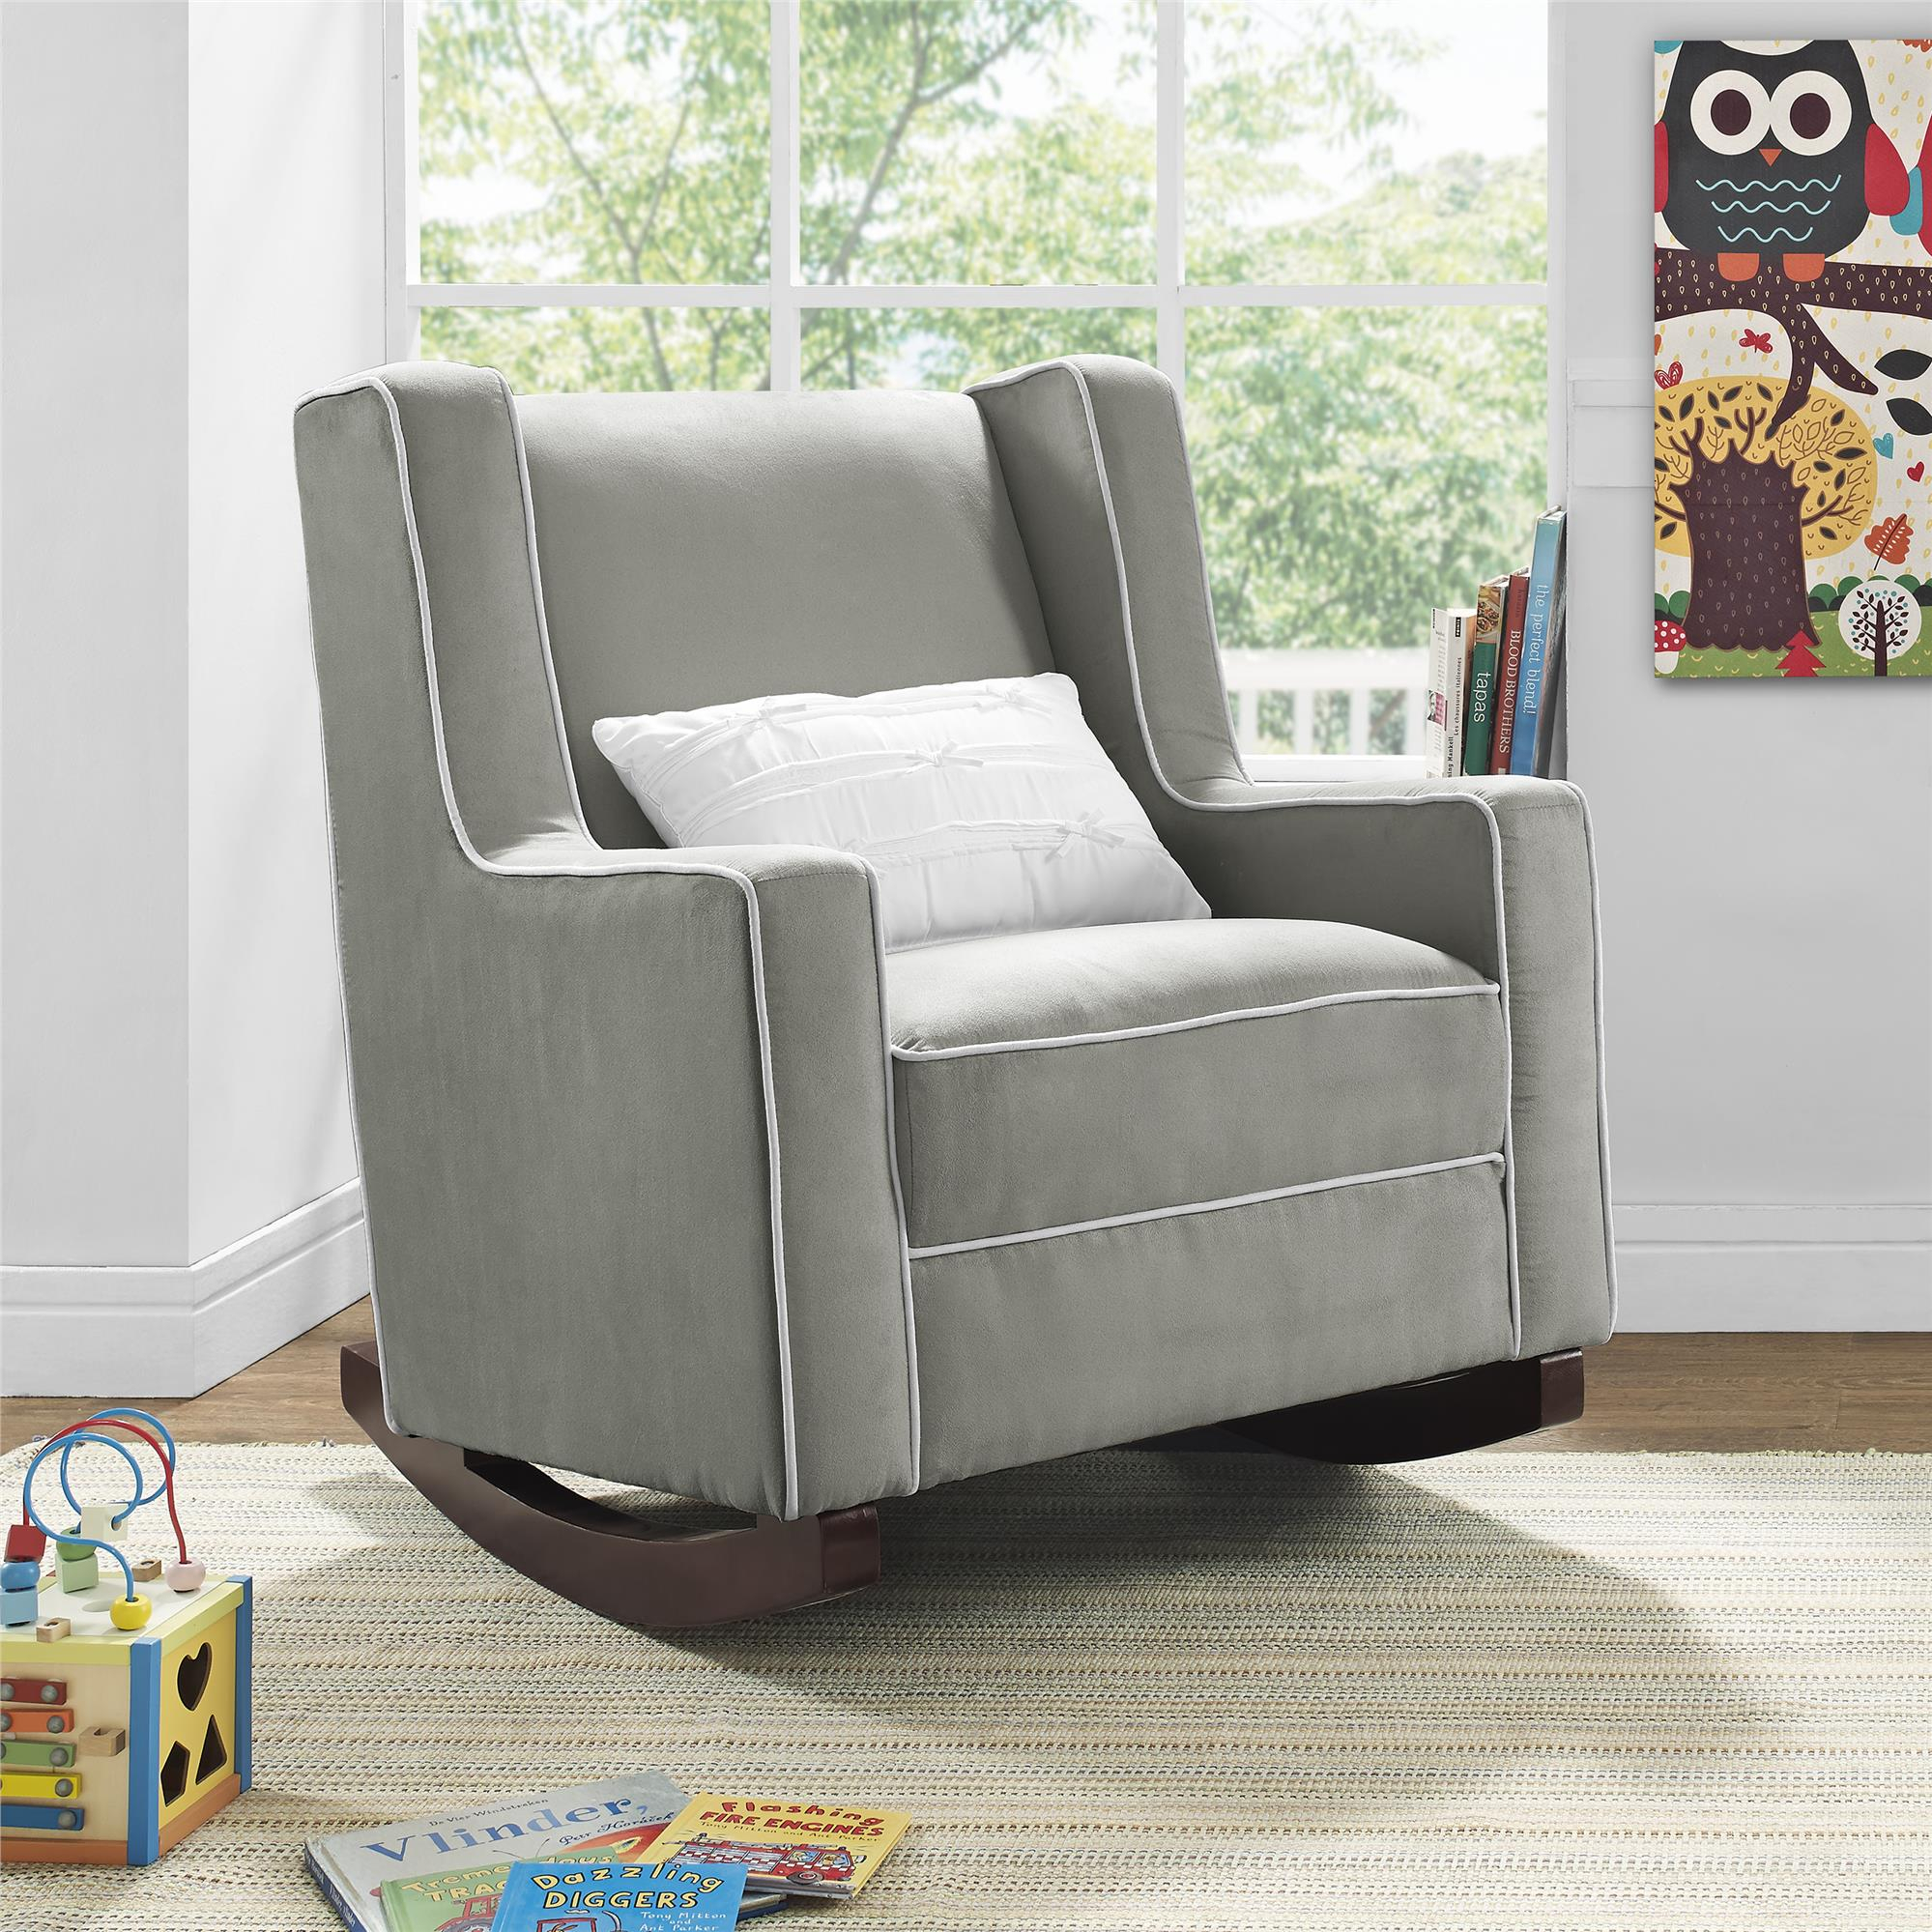 Dorel Living | Baby Relax Abby Rocker, Gray With Regard To Abbey Swivel Glider Recliners (View 2 of 20)